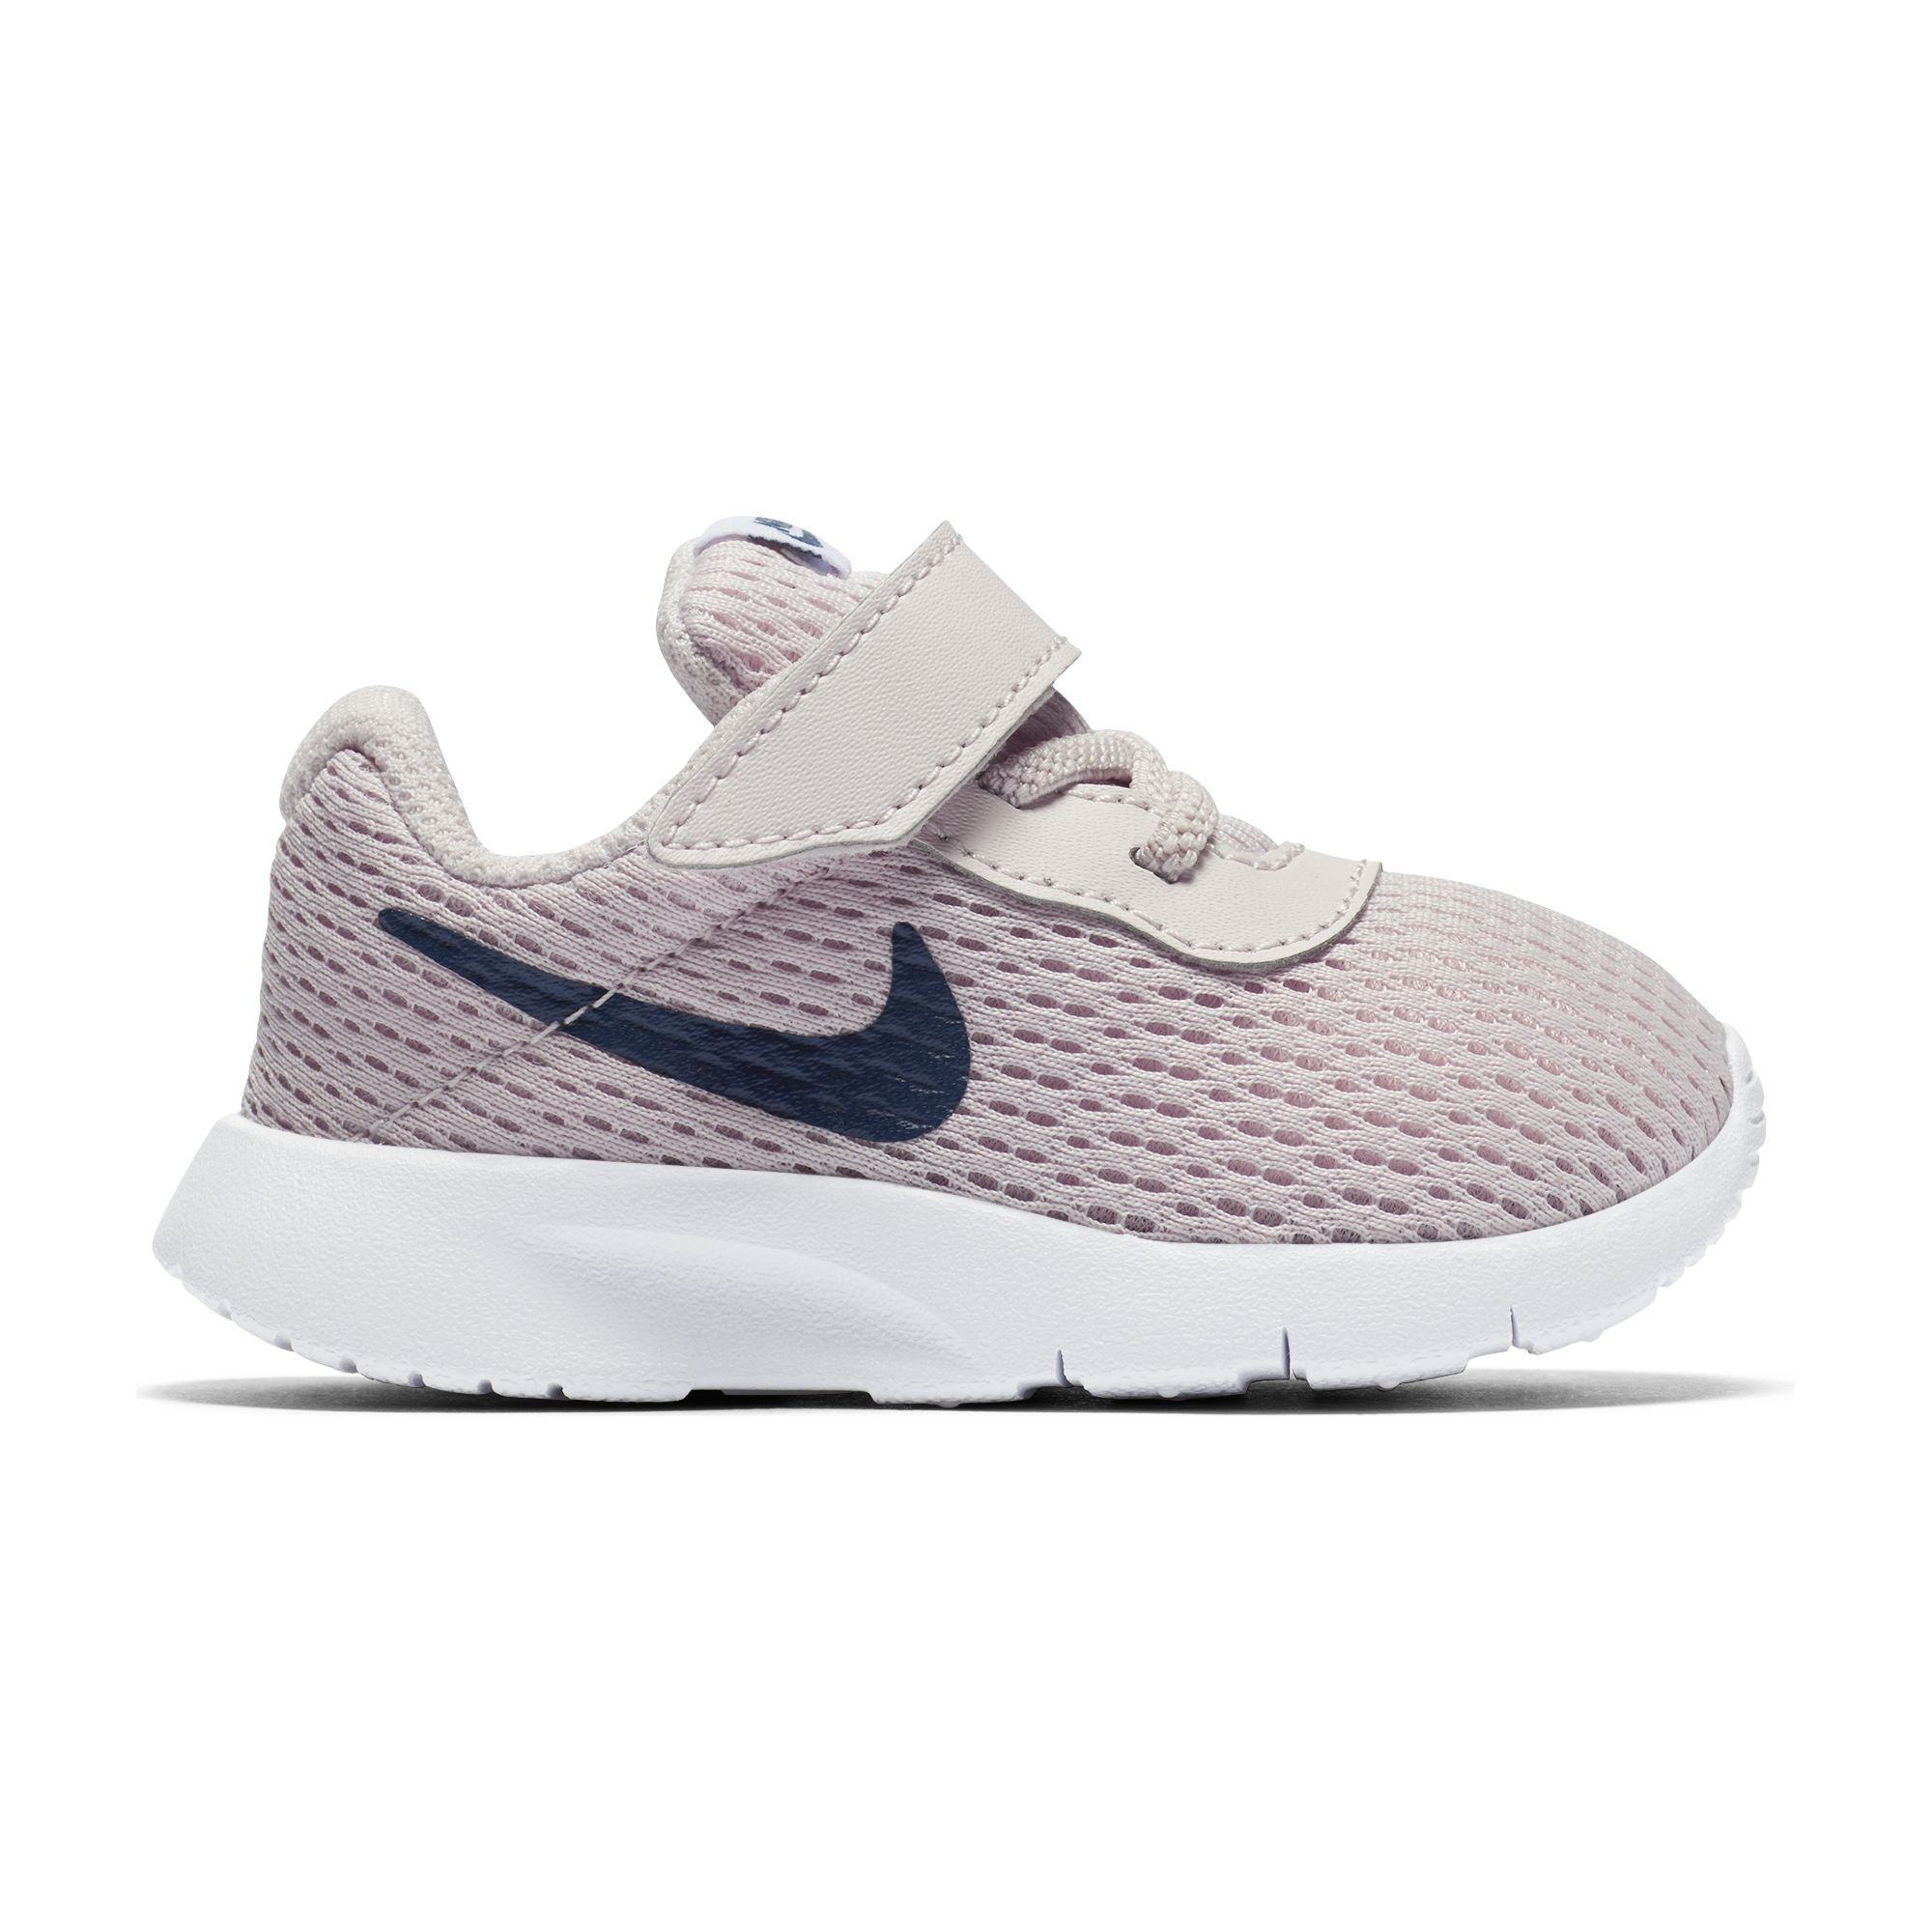 7c79211b4648 Galleon - NIKE Girl s Tanjun Shoe Barely Rose Navy White Size 9 M US